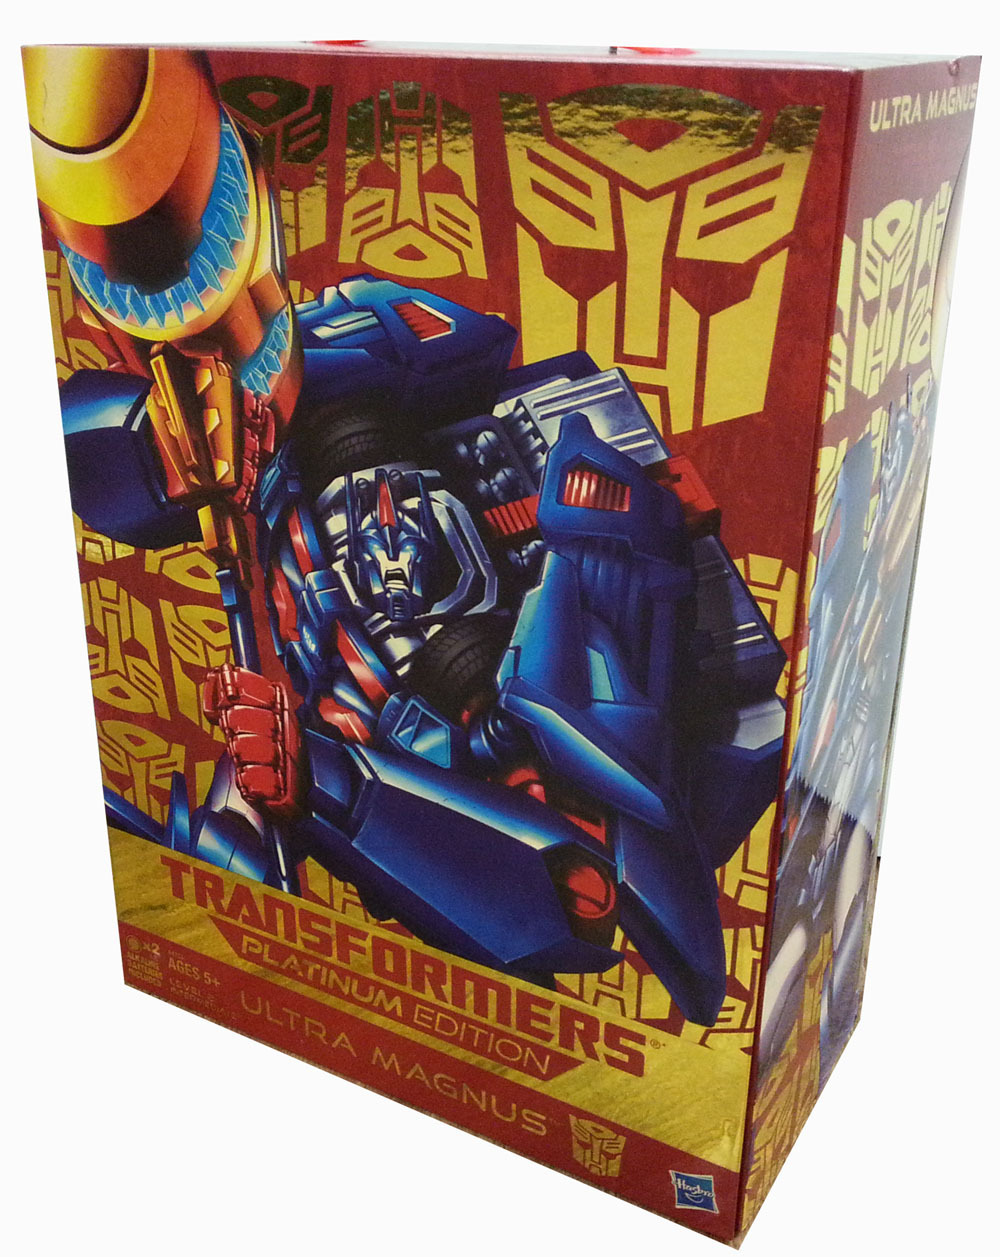 TRANSFORMERS PLATINUM EDITION ULTRA MAGNUS Weaponizer Exclusive